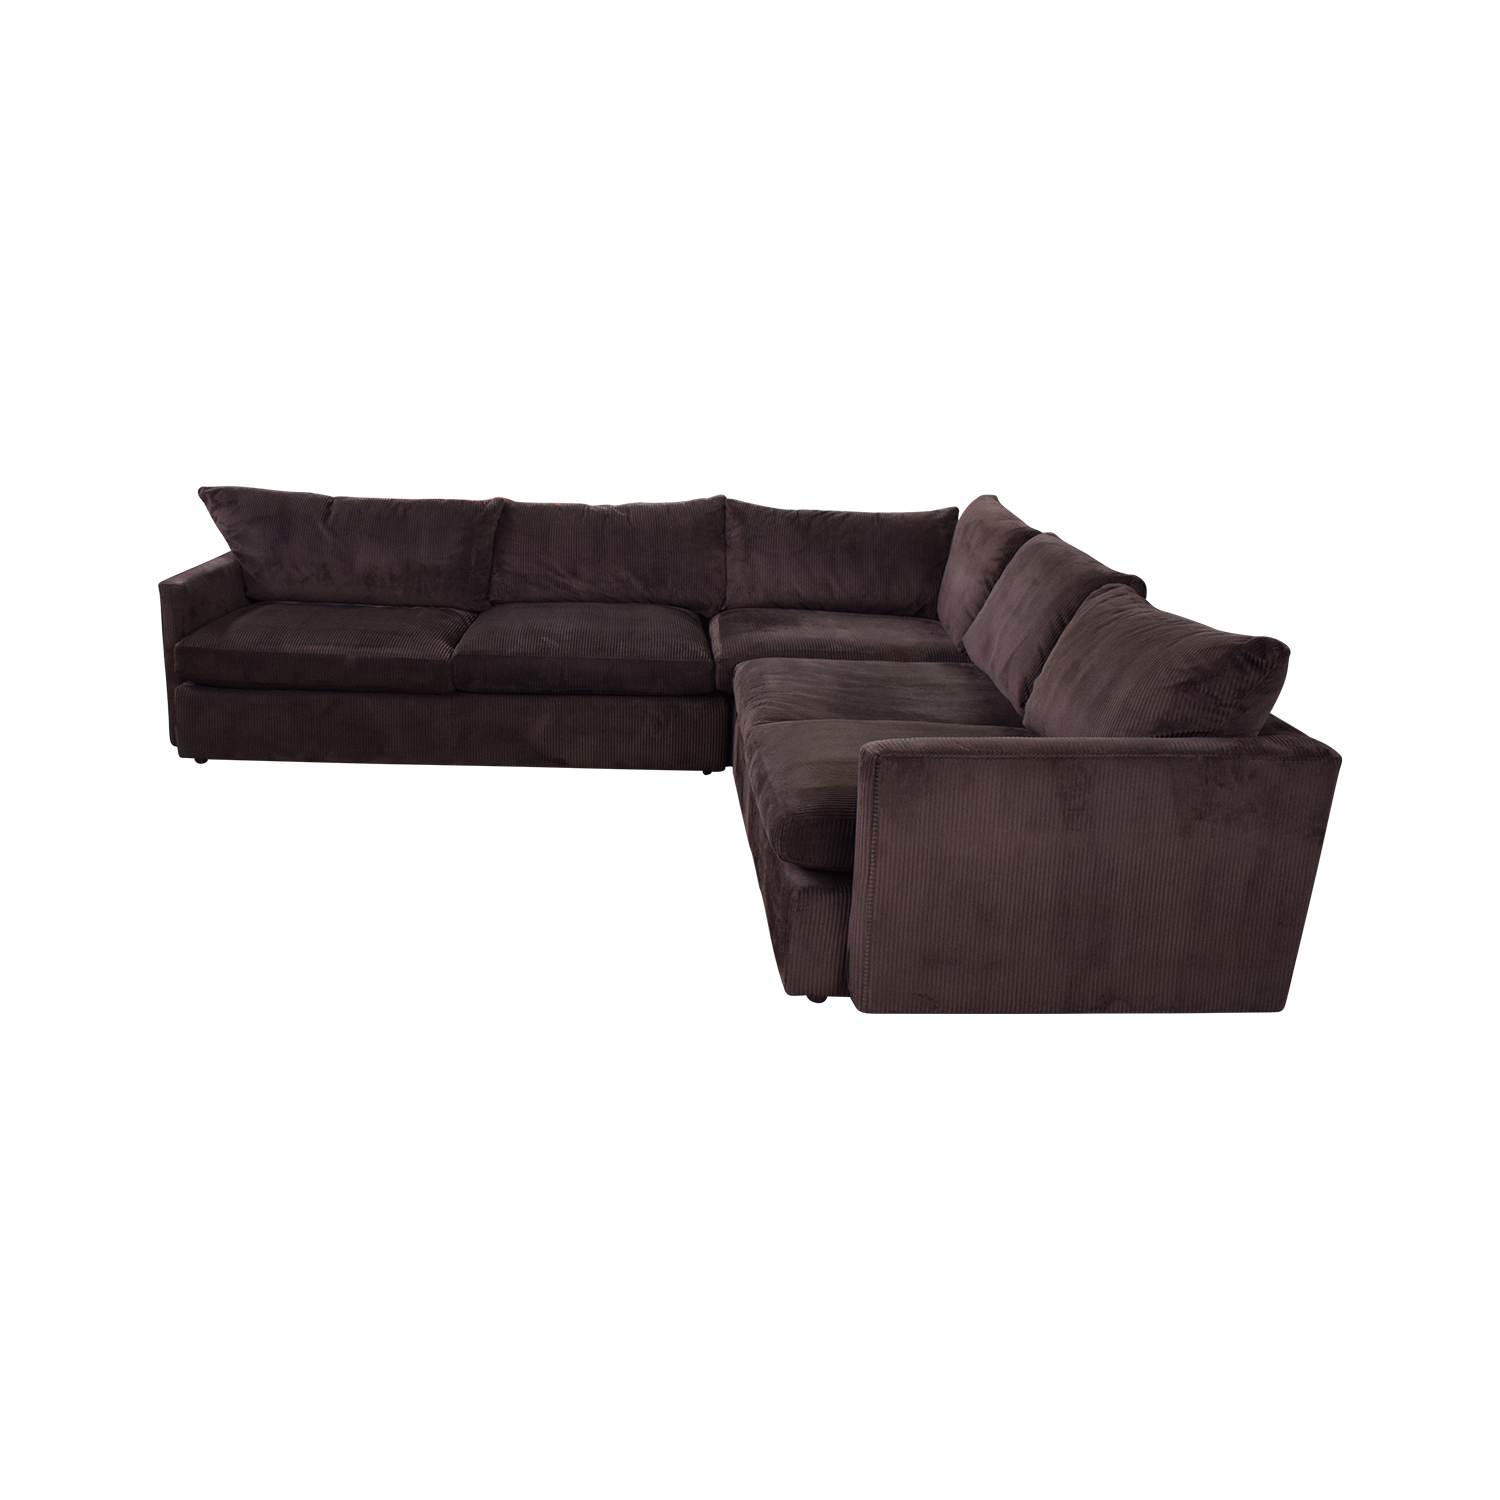 Crate & Barrel Crate & Barrel Three-Piece Sectional Sofa second hand